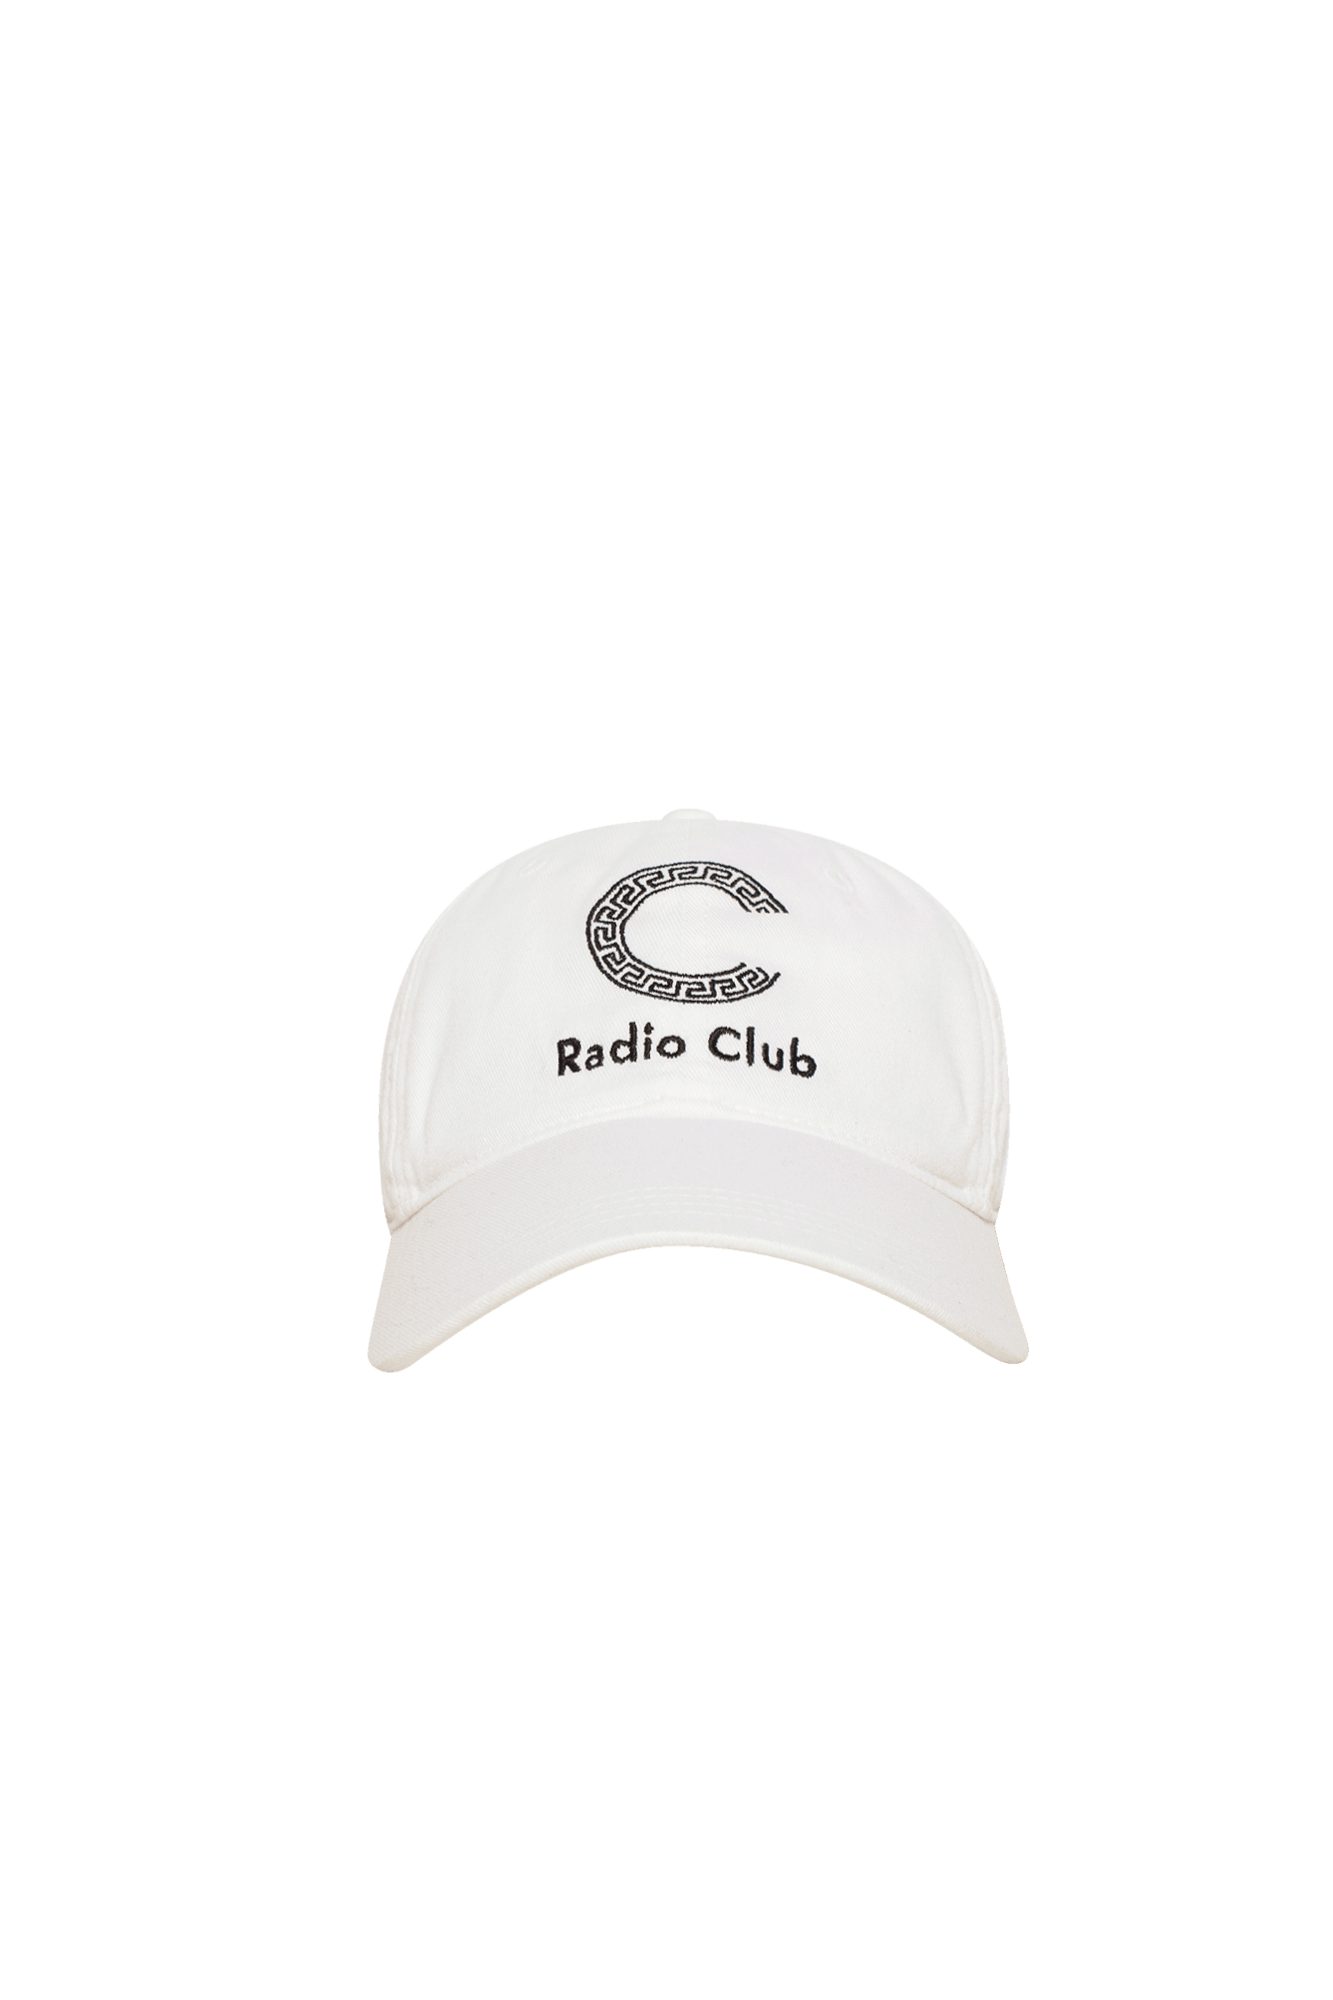 Hats P.A.M. x Carhartt WIP Radio Club Logo Cap White - One Block Down